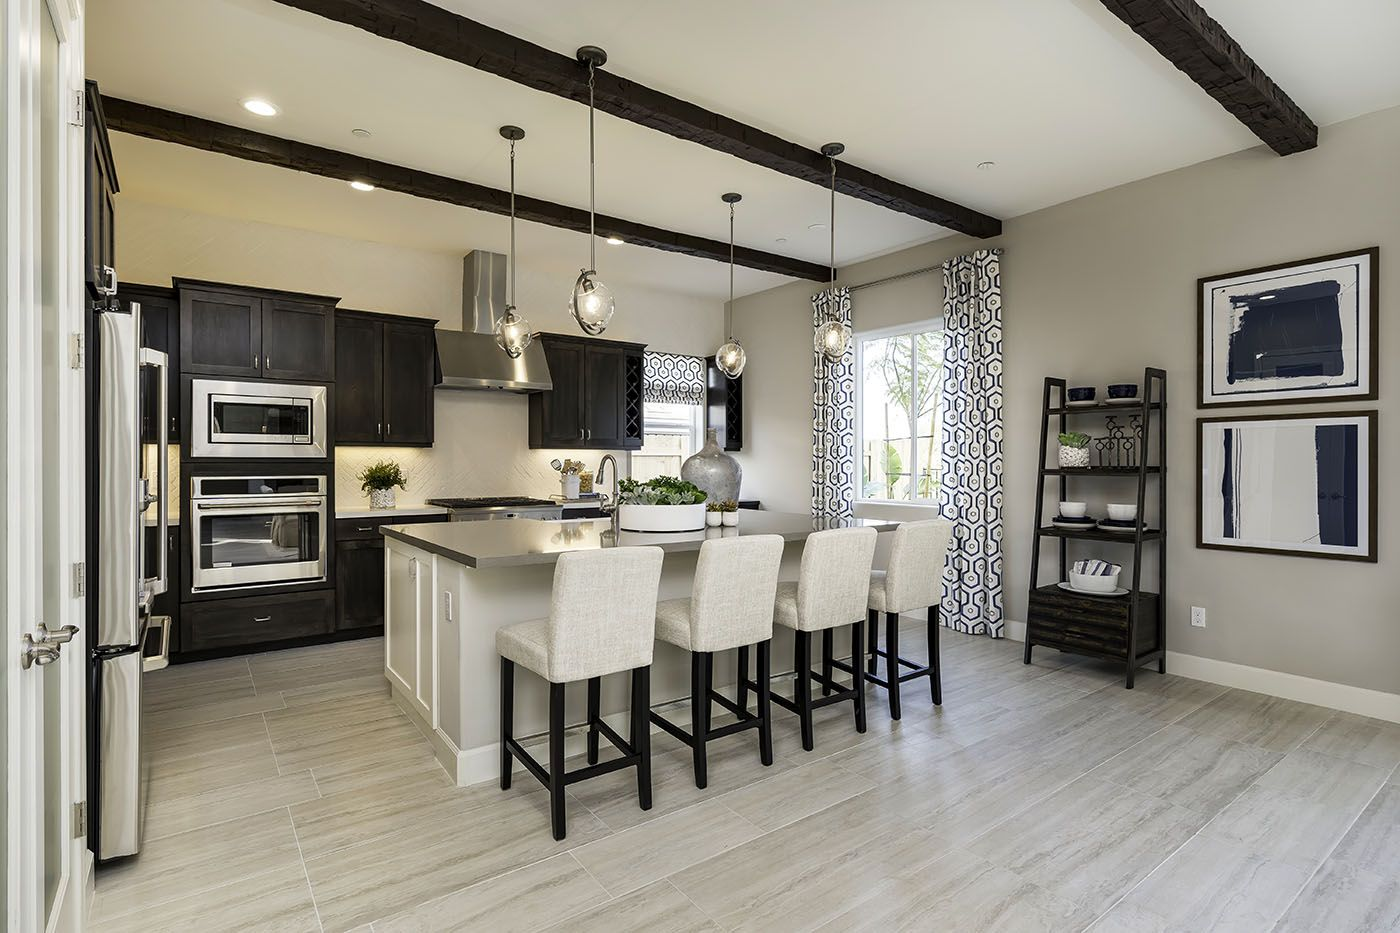 Kitchen featured in the Windsor By Coastal Community Builders in Santa Barbara, CA